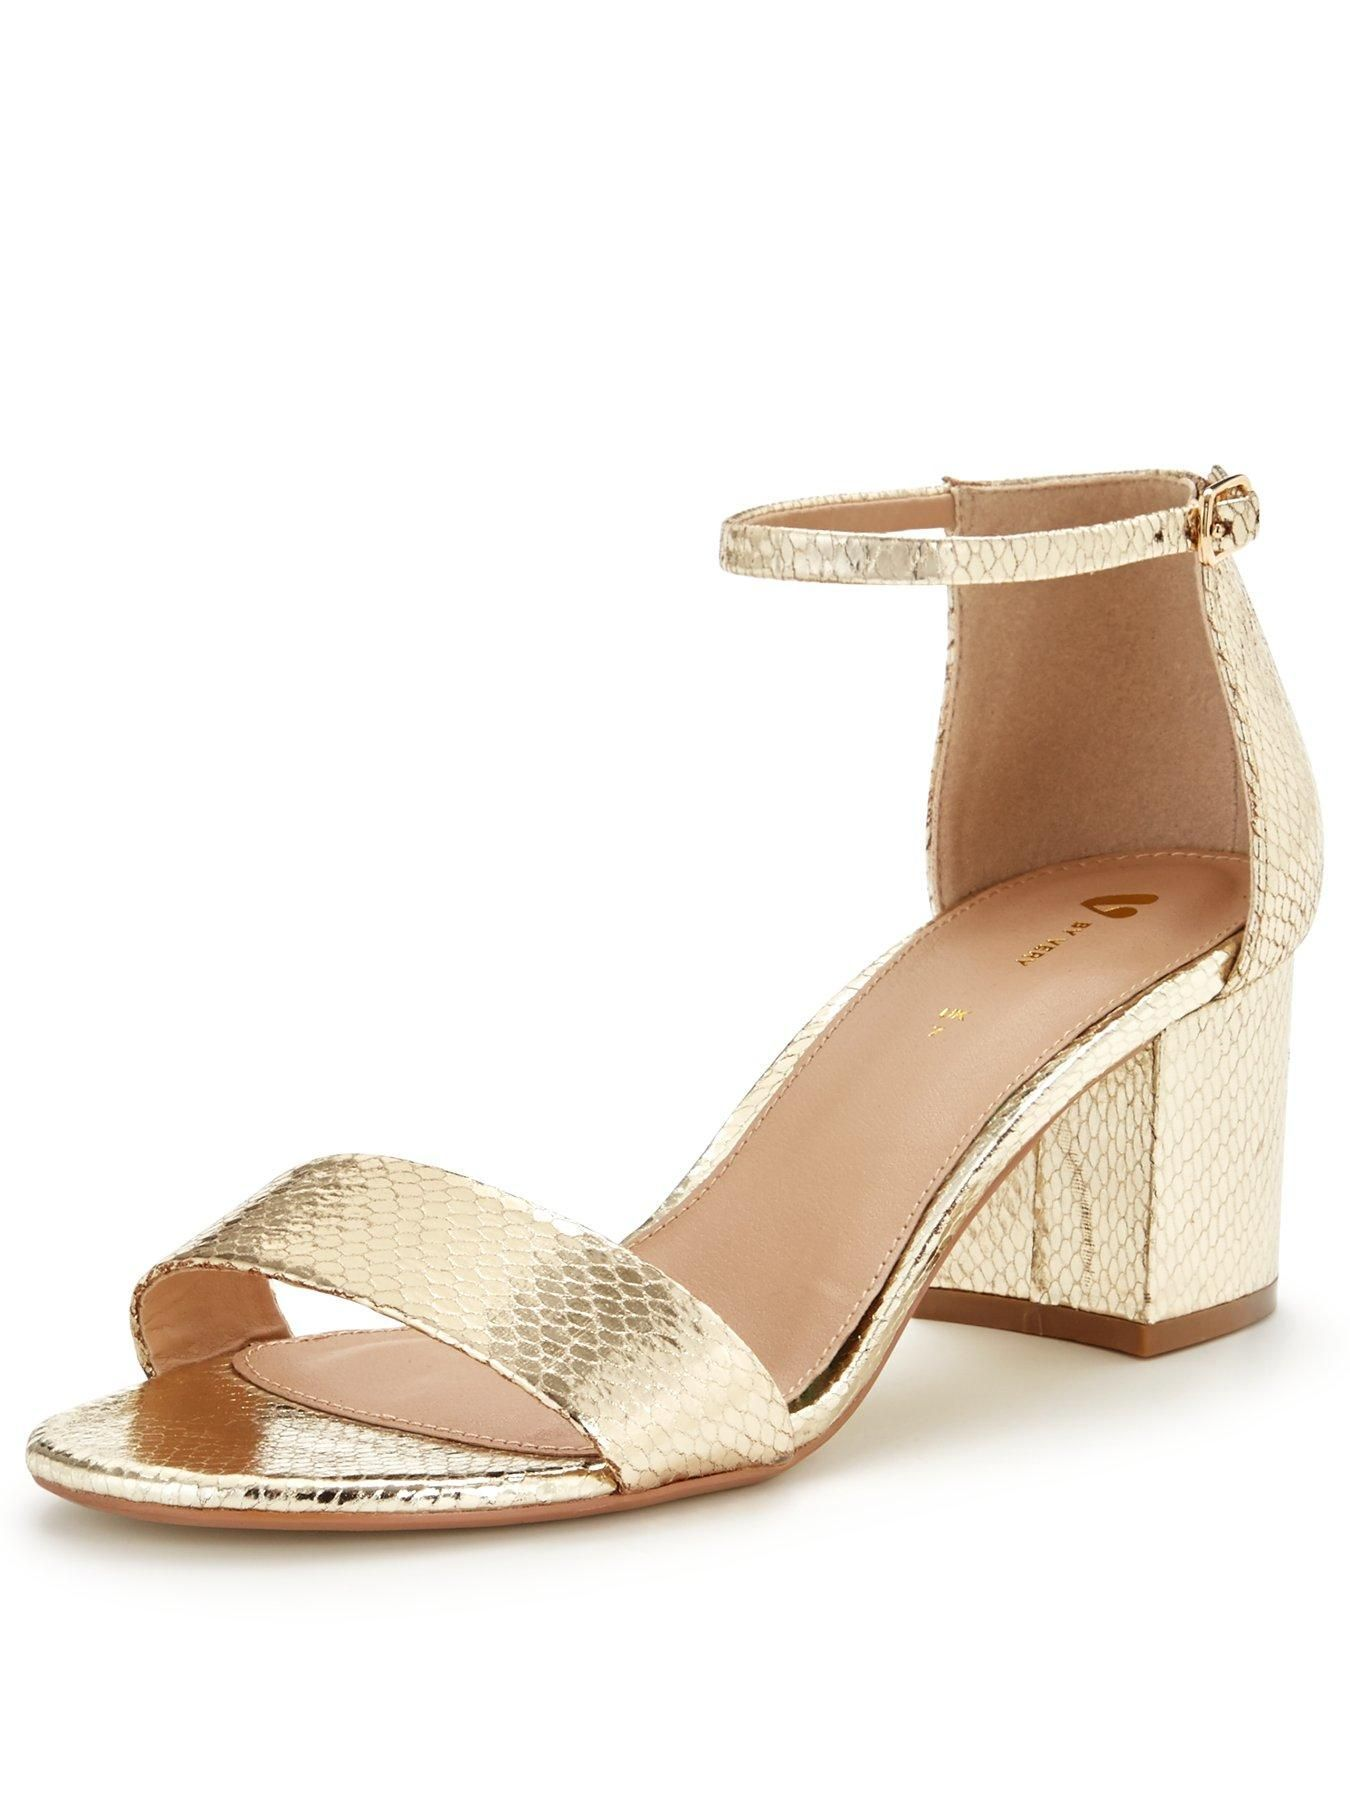 4f90234f4df8 V by Very Houghton Low Block Heel Strap Sandal